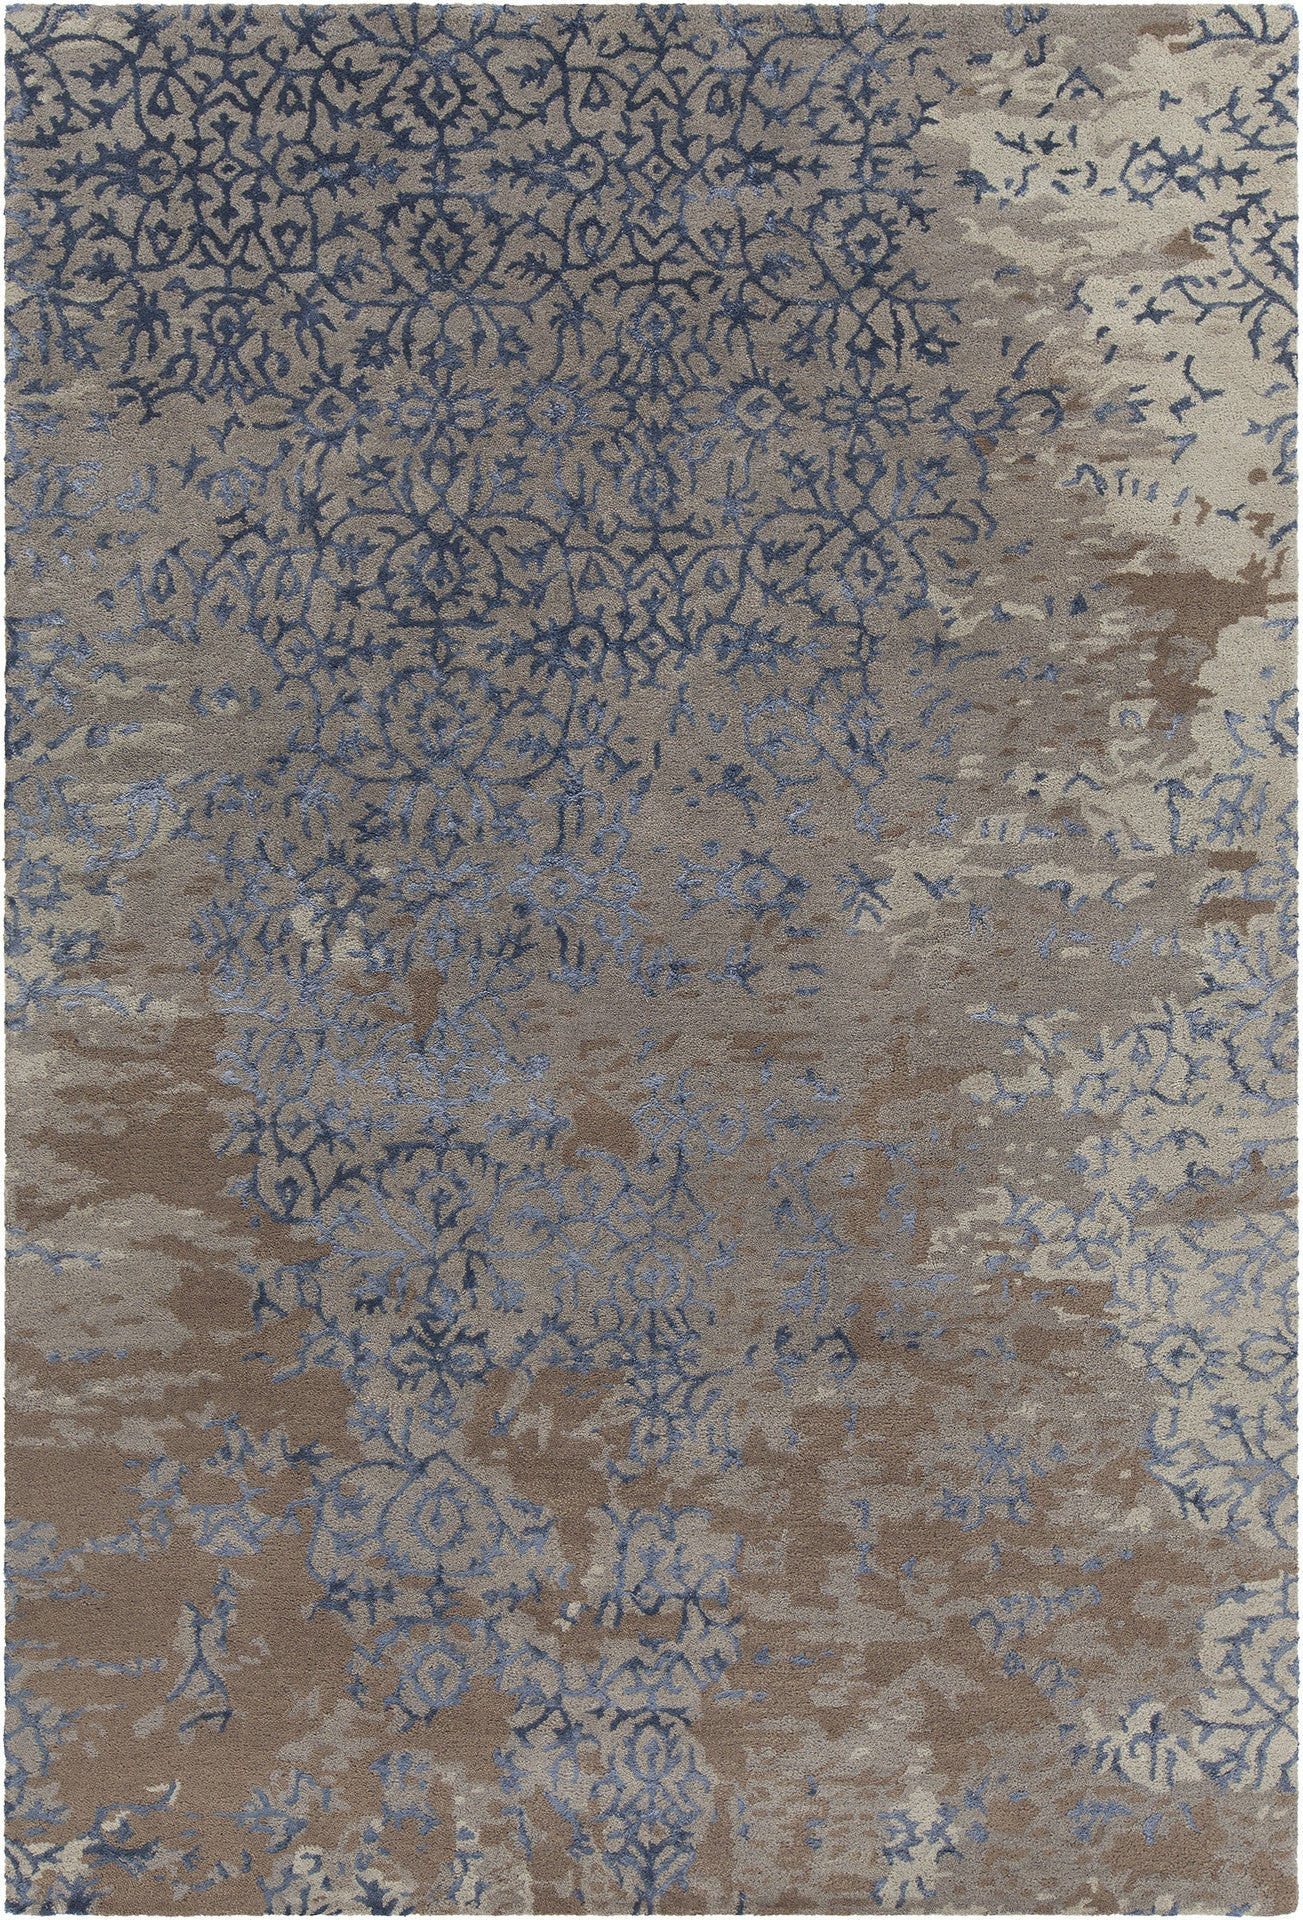 Nice Rupec Collection Hand Tufted Area Rug In Grey, Blue, U0026 Brown Design By  Chandra Rugs